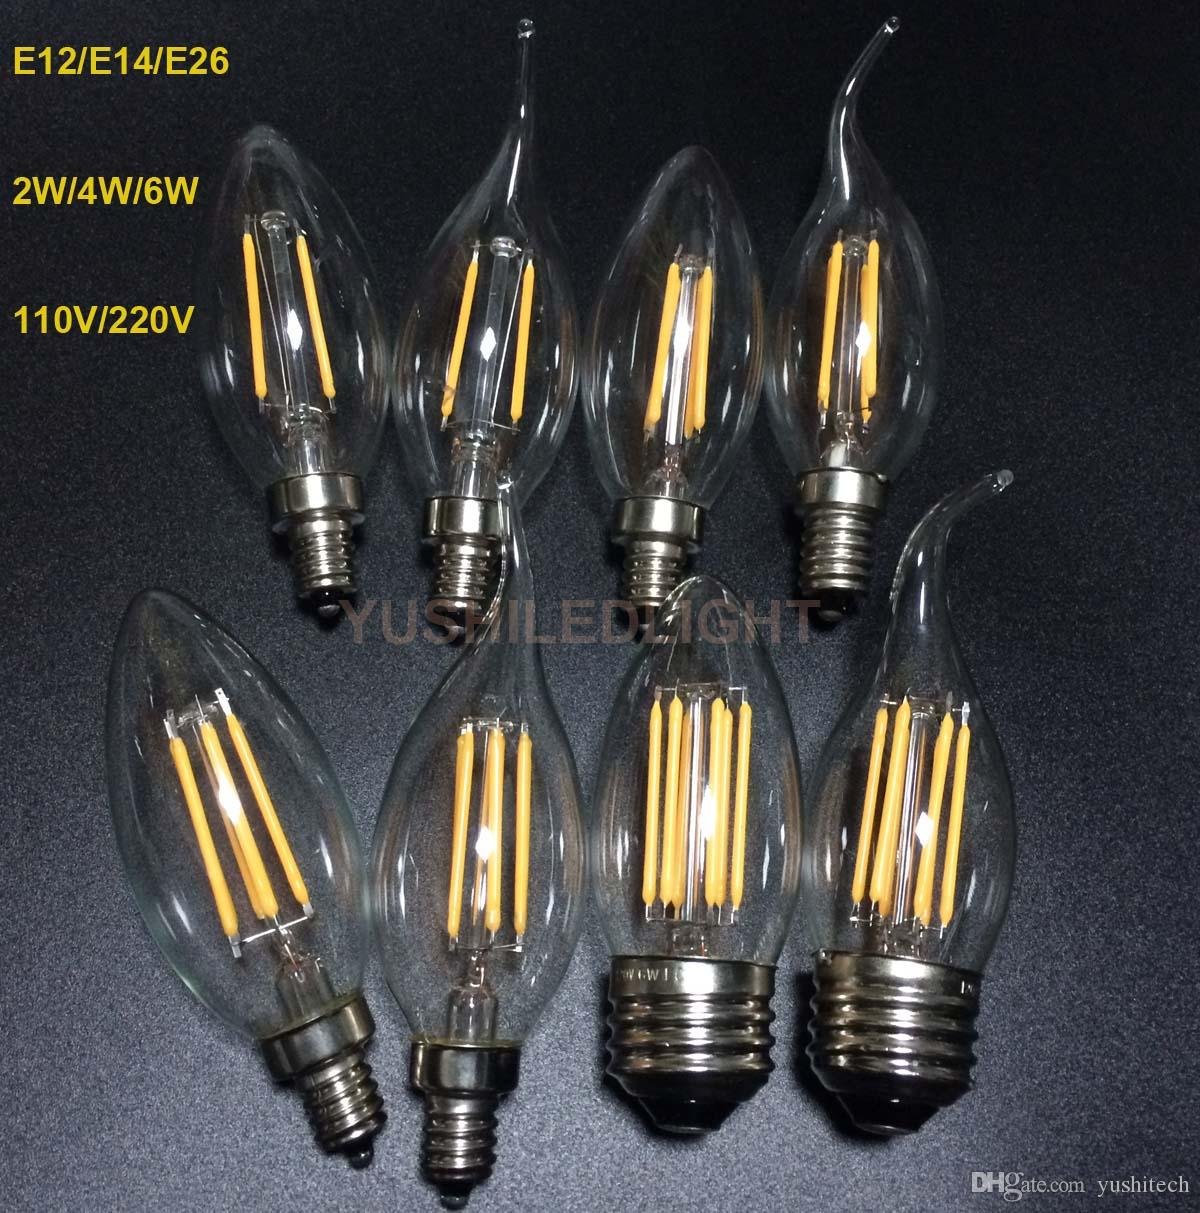 E12 e14 e26 base dimmable 246w led filament candelabra bulbs 110lm e12 e14 e26 base dimmable 246w led filament candelabra bulbs 110lmw 2700k 110v 220v c35 bullet top c35t bent tip cob bulb ceul approval led candelabra arubaitofo Images